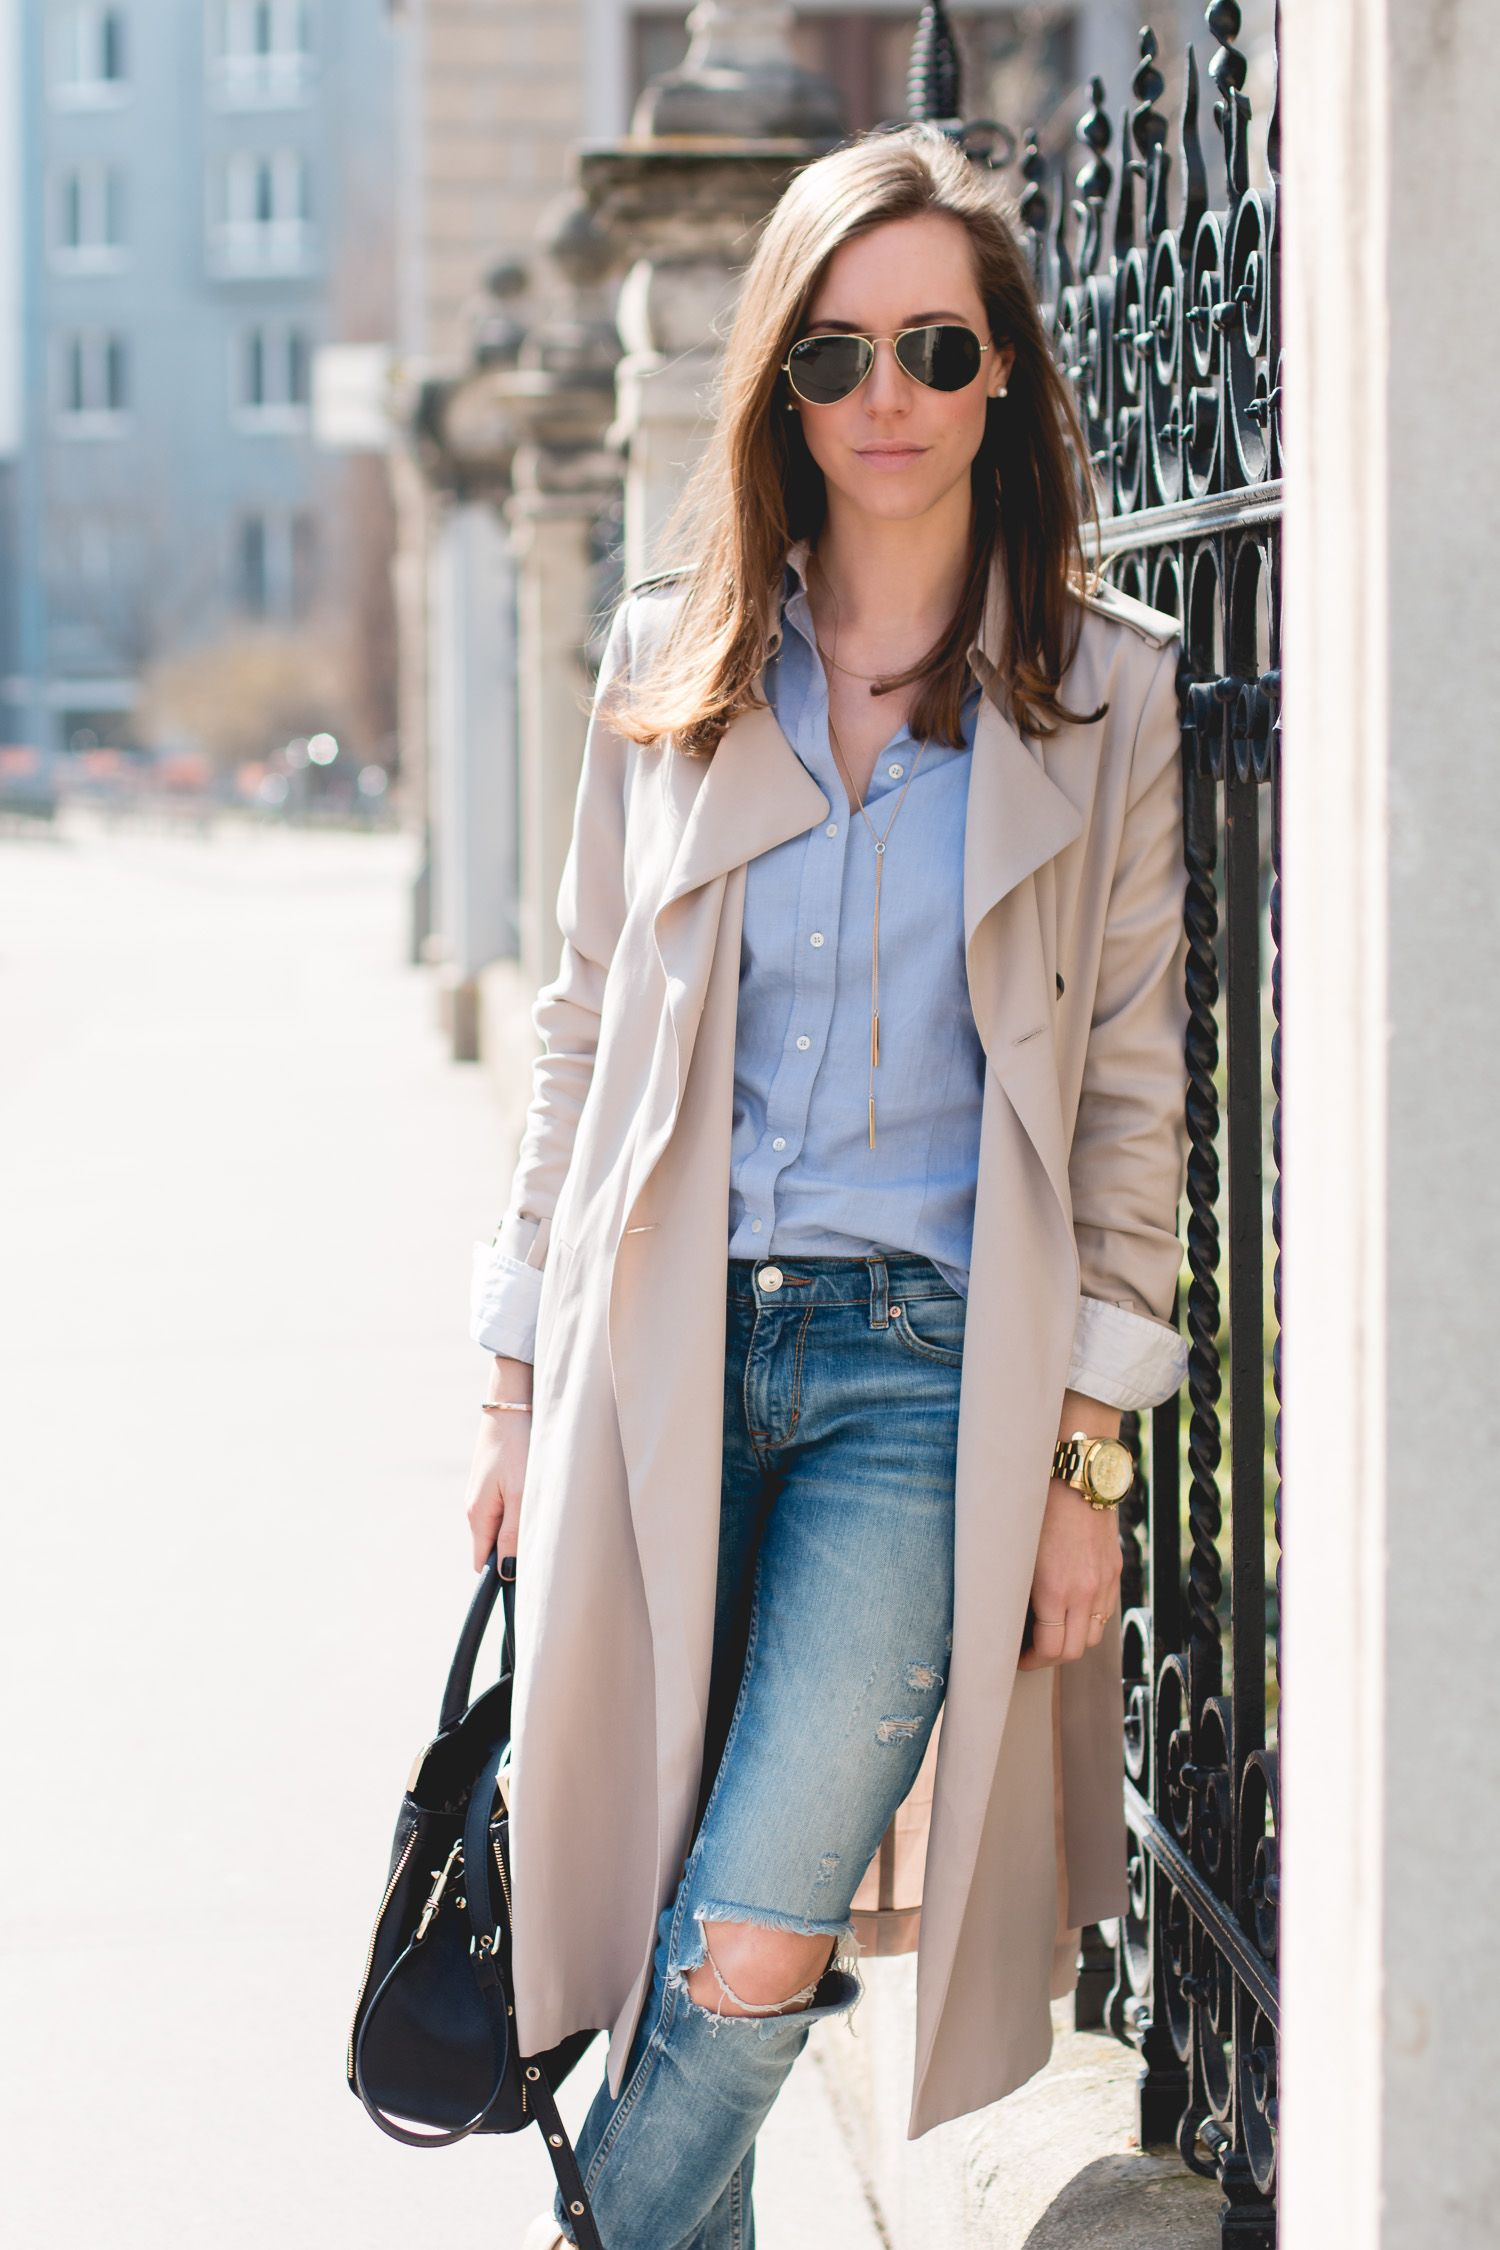 Classic OutfitSweet Outfits Beige Trenchcoat Pinterest HE9D2I